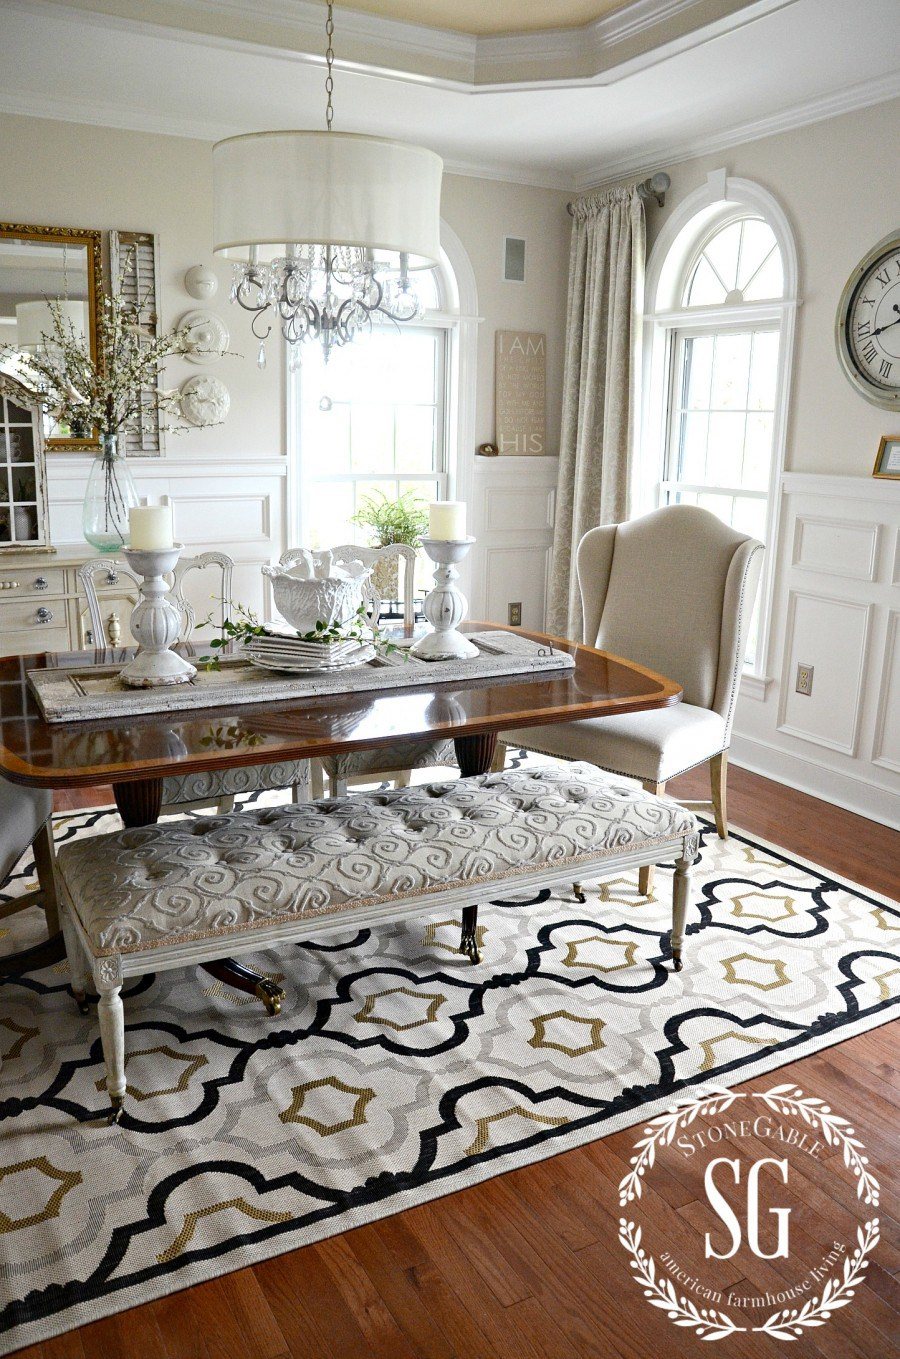 rugs for dining room 5 rules for choosing the perfect dining room rug-dining room -stonegableblog.com SBGRBEJ